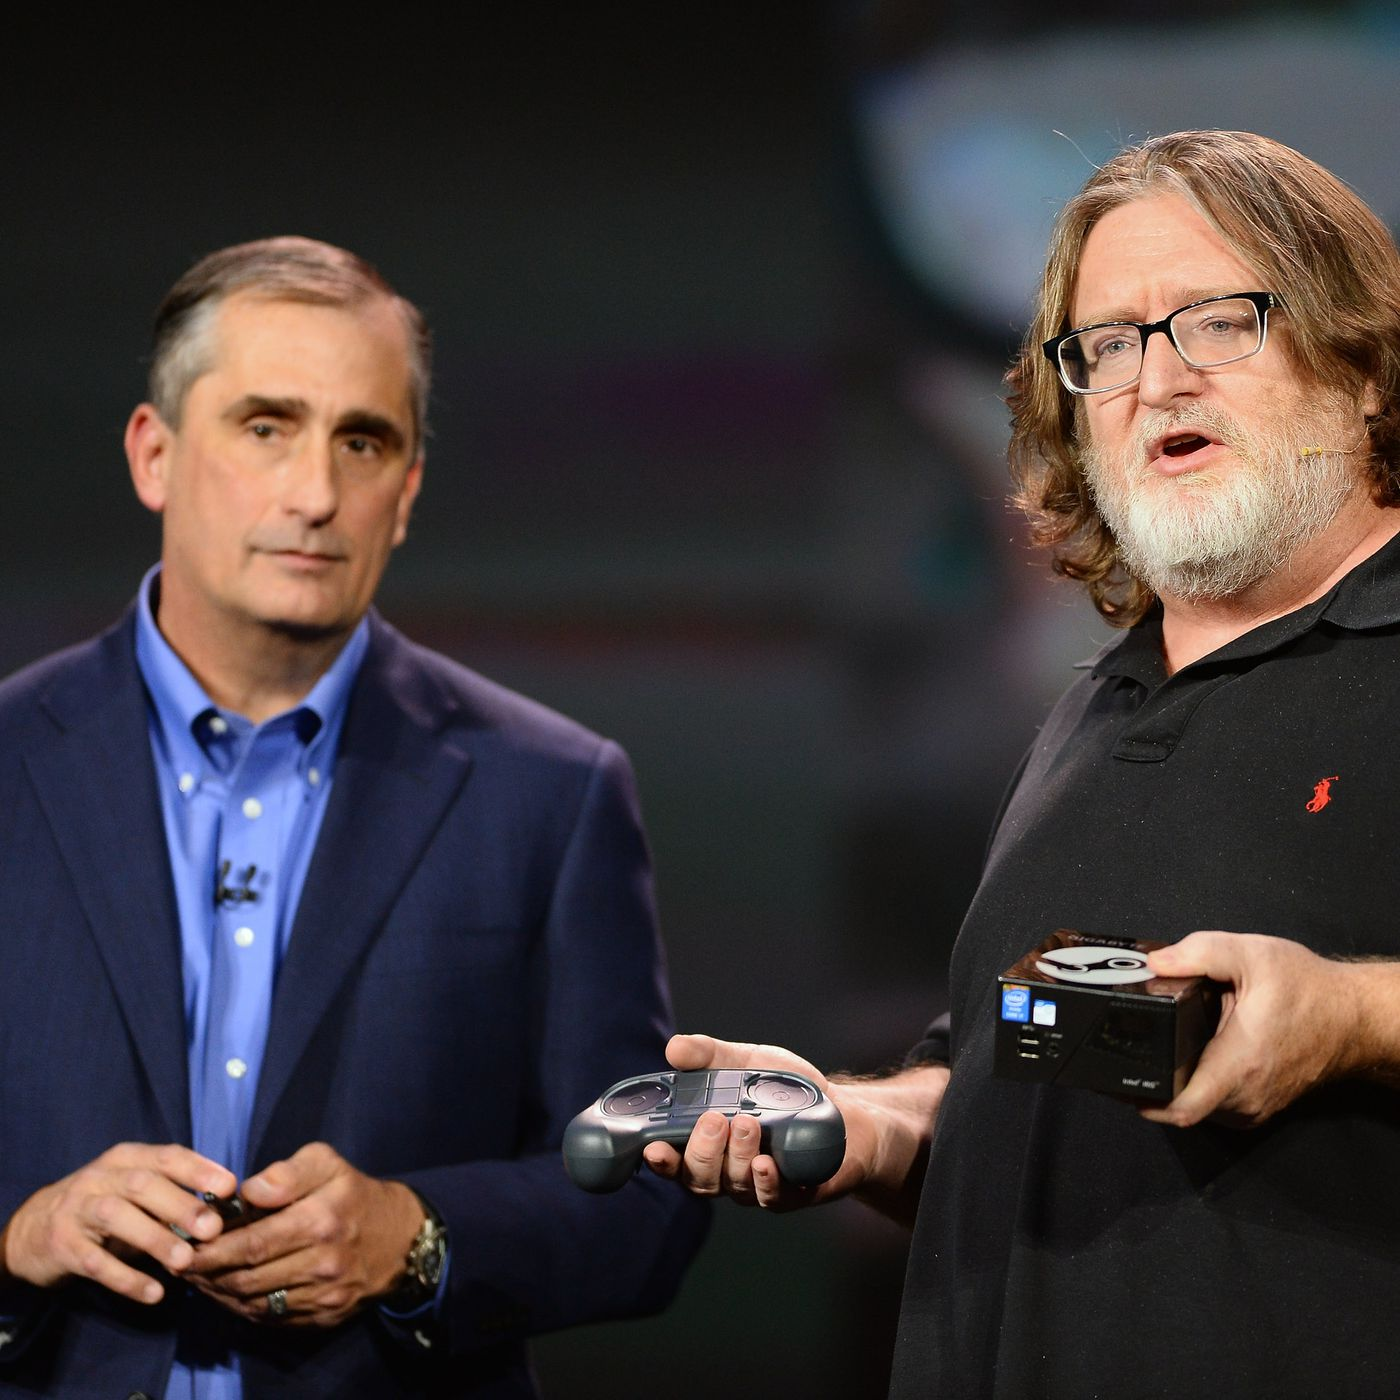 Valve is not your friend and Steam is not healthy for gaming